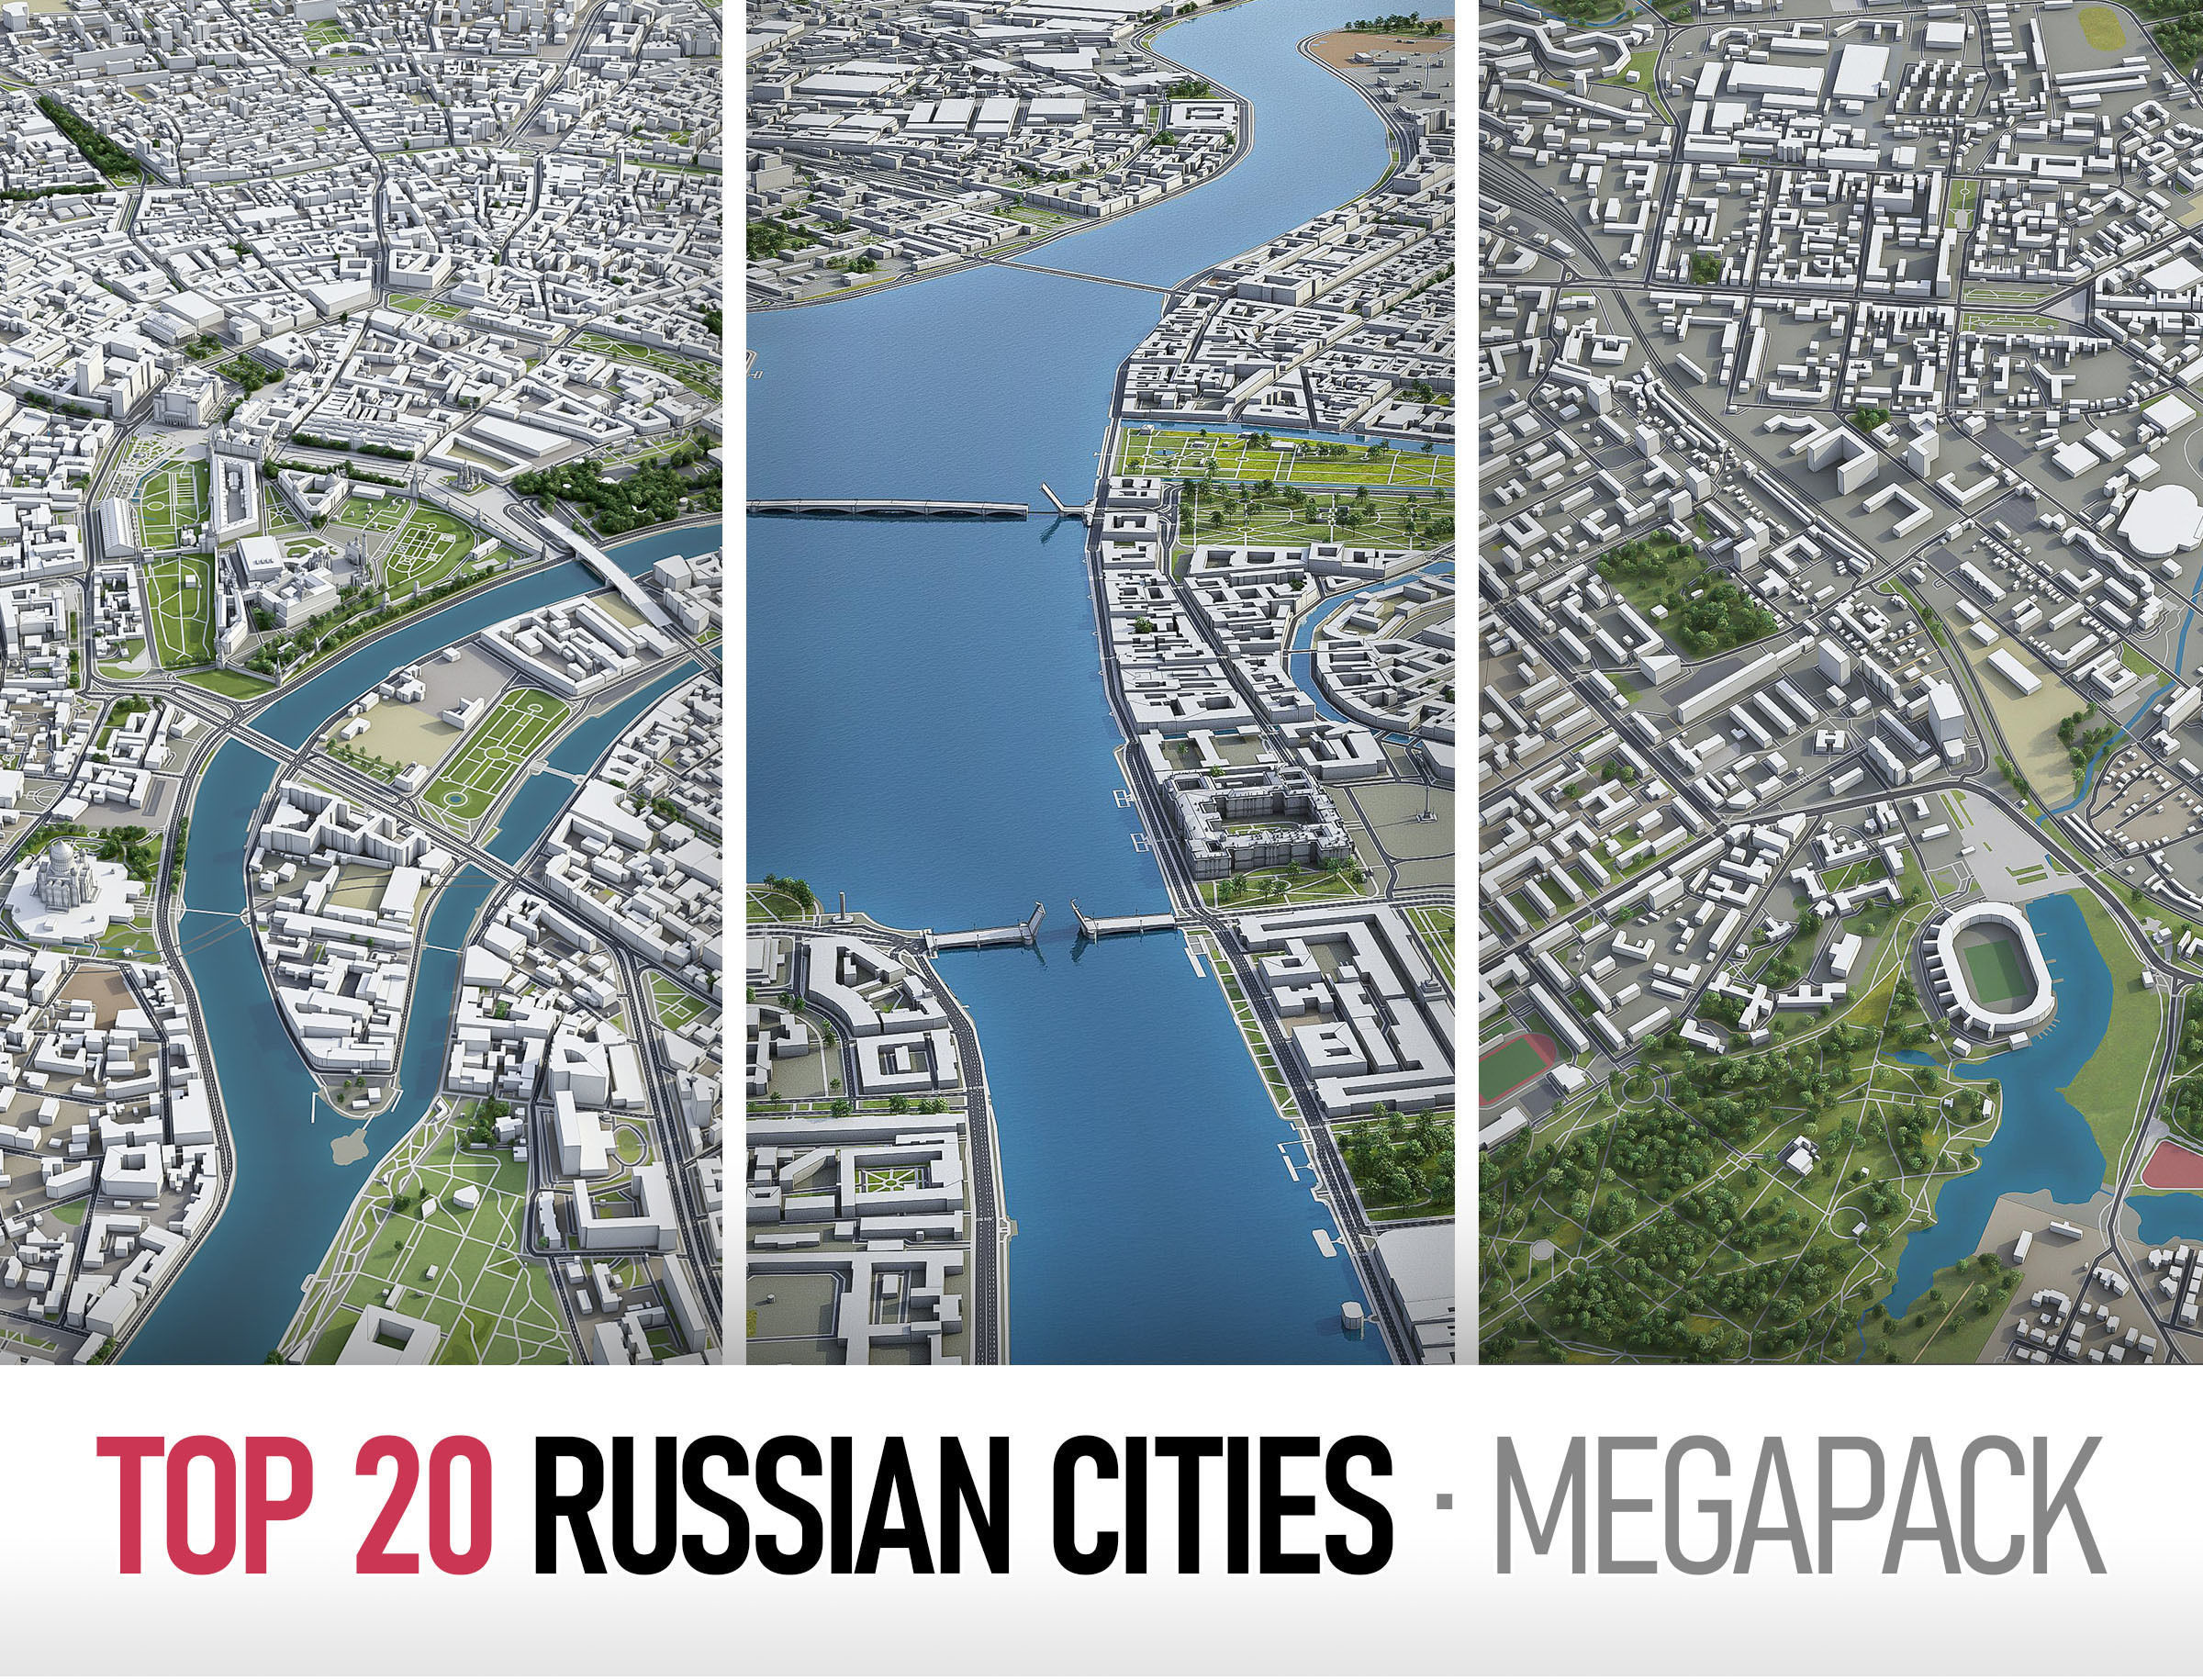 Top Russian Cities MEGAPACK